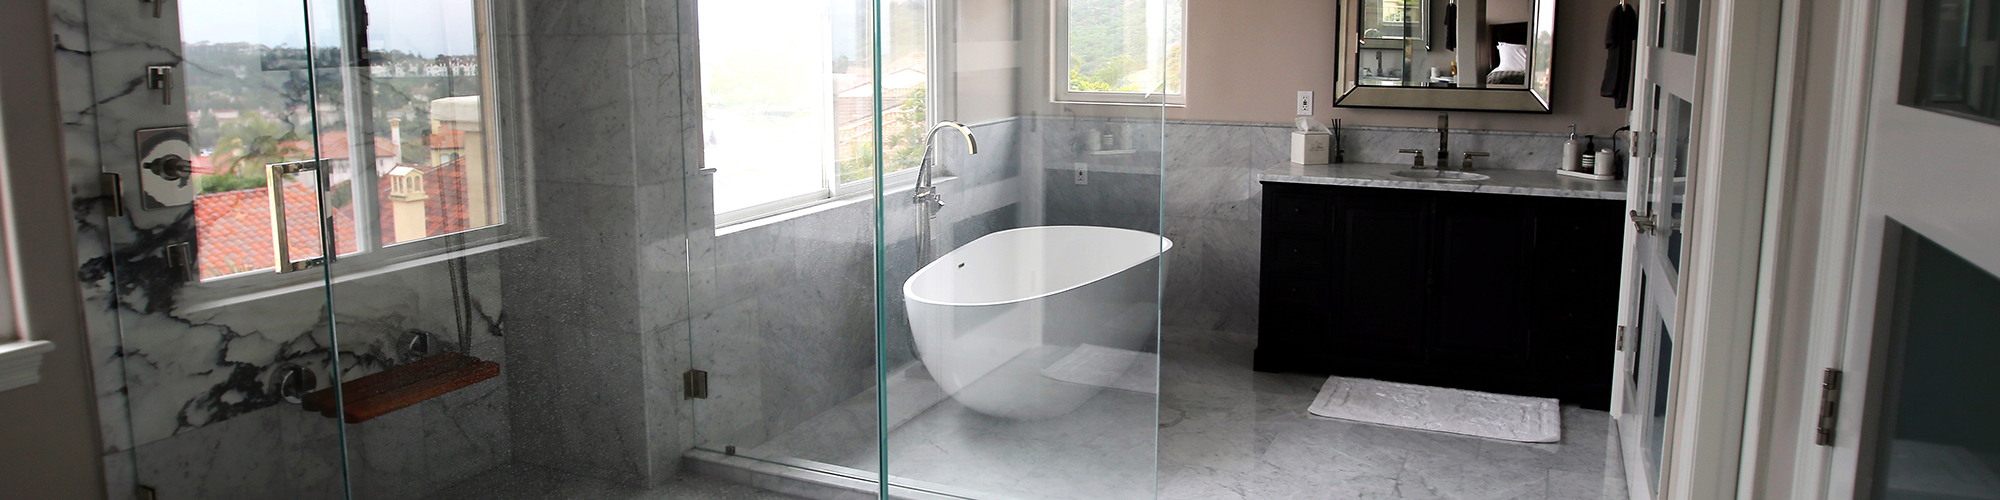 Affordable Bathroom Remodeling Contractor in Long Beach, CA